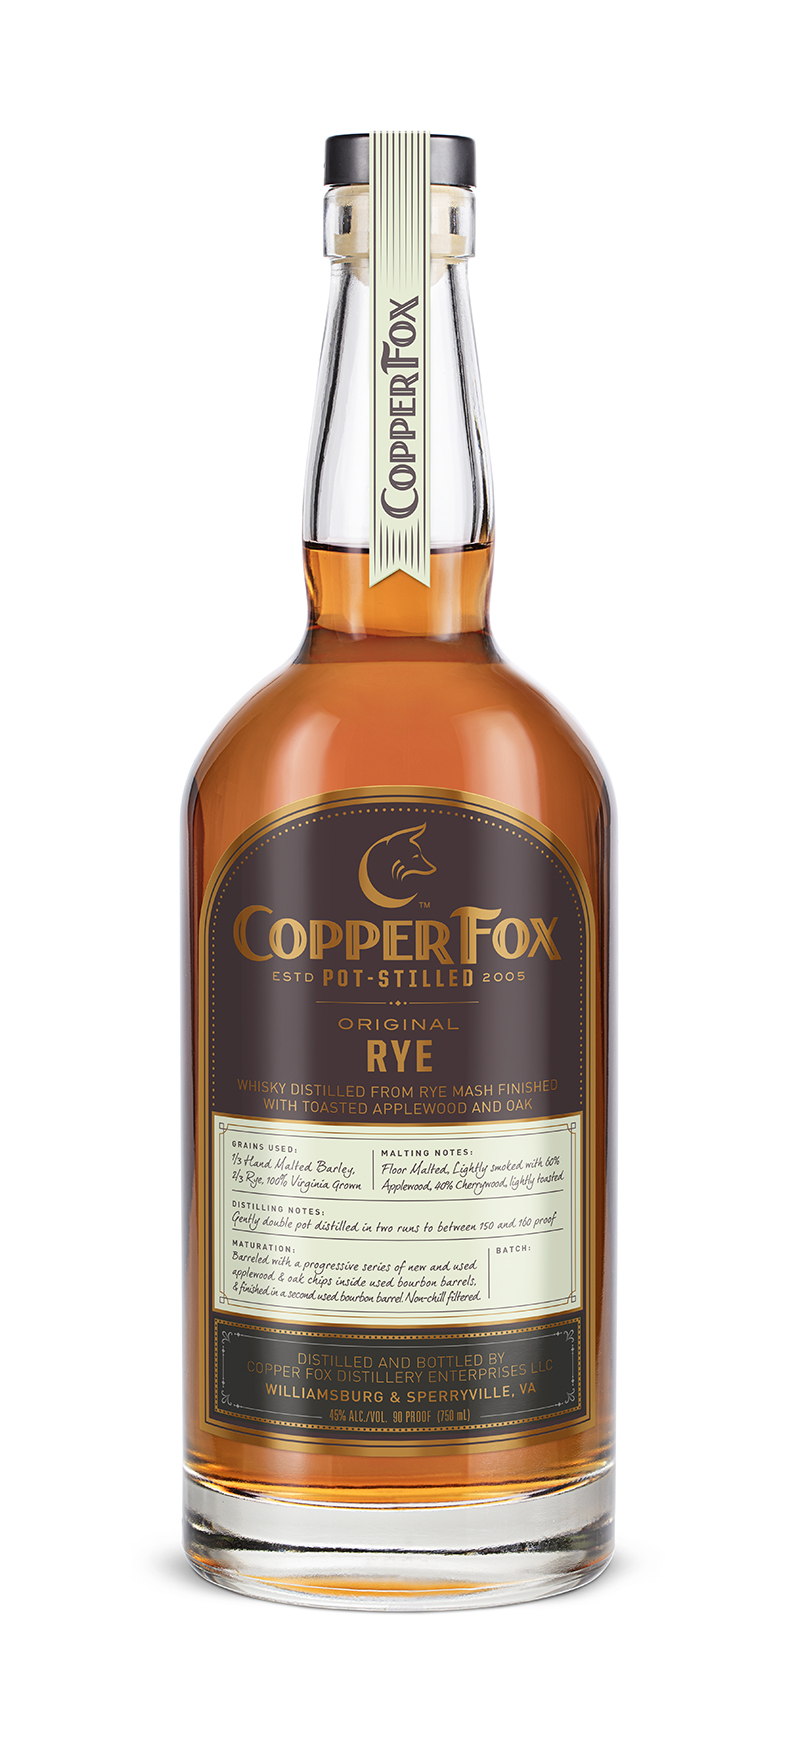 COPPER FOX ORIGINAL RYE WHISKY - Distilled from a unique blend of thoroughbred grains from the Northern Neck of Virginia; 2/3 rye, 1/3 barley, hand-malted and kiln-dried with applewood and cherrywood smoke.Double pot-distilled at a low 150 to 160 proof to enhance the fruitiness and matured in ex-bourbon barrels with progressive infusions of toasted apple wood and oak chips.TASTING NOTESColor: Copper and Macintosh appleNose: Sensual aromas of butter roasted chestnuts, clay, dried apple and pickling spices, rye grain sacksPalate: Silky, with dried fruit and nuts, medium-to-full body, warm and invitingFinish: Honeyed rye toast, peppery spice, cola, fig and mineral richNon-chill filtered. 45% ABV/90 proofWonderfully balanced with a great combination of creamy, spicy and subtle understated smoke perfect for all applications and occasions. A great crossover for inquiring bourbon drinkers.‹ PreviousBack to GalleryNext ›